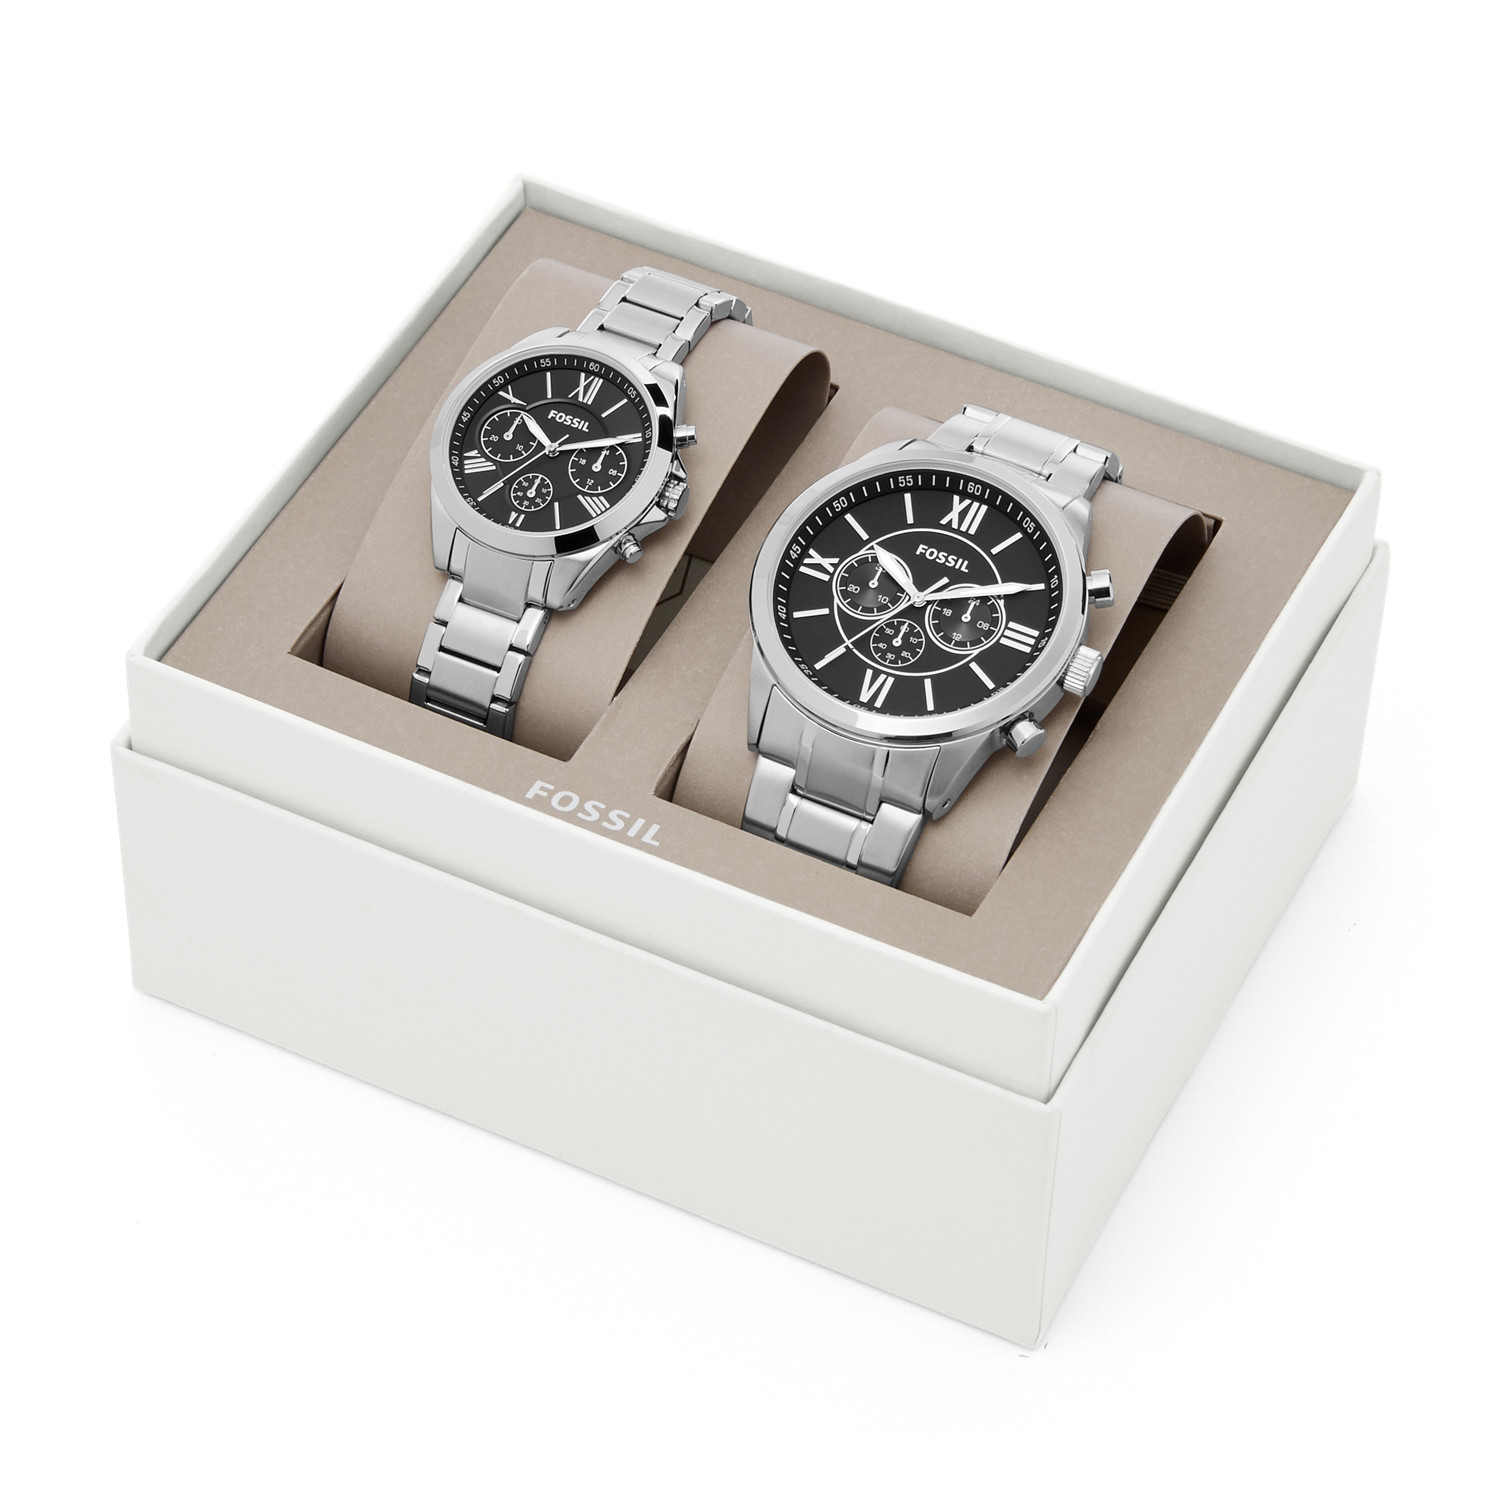 dc9964b30c68 His and Her Chronograph Stainless Steel Watch Gift Set. lblAltImage 0   lblAltImage 1. lblAltImage 1. lblAltImage 1. Continue Editing Confirm   Add